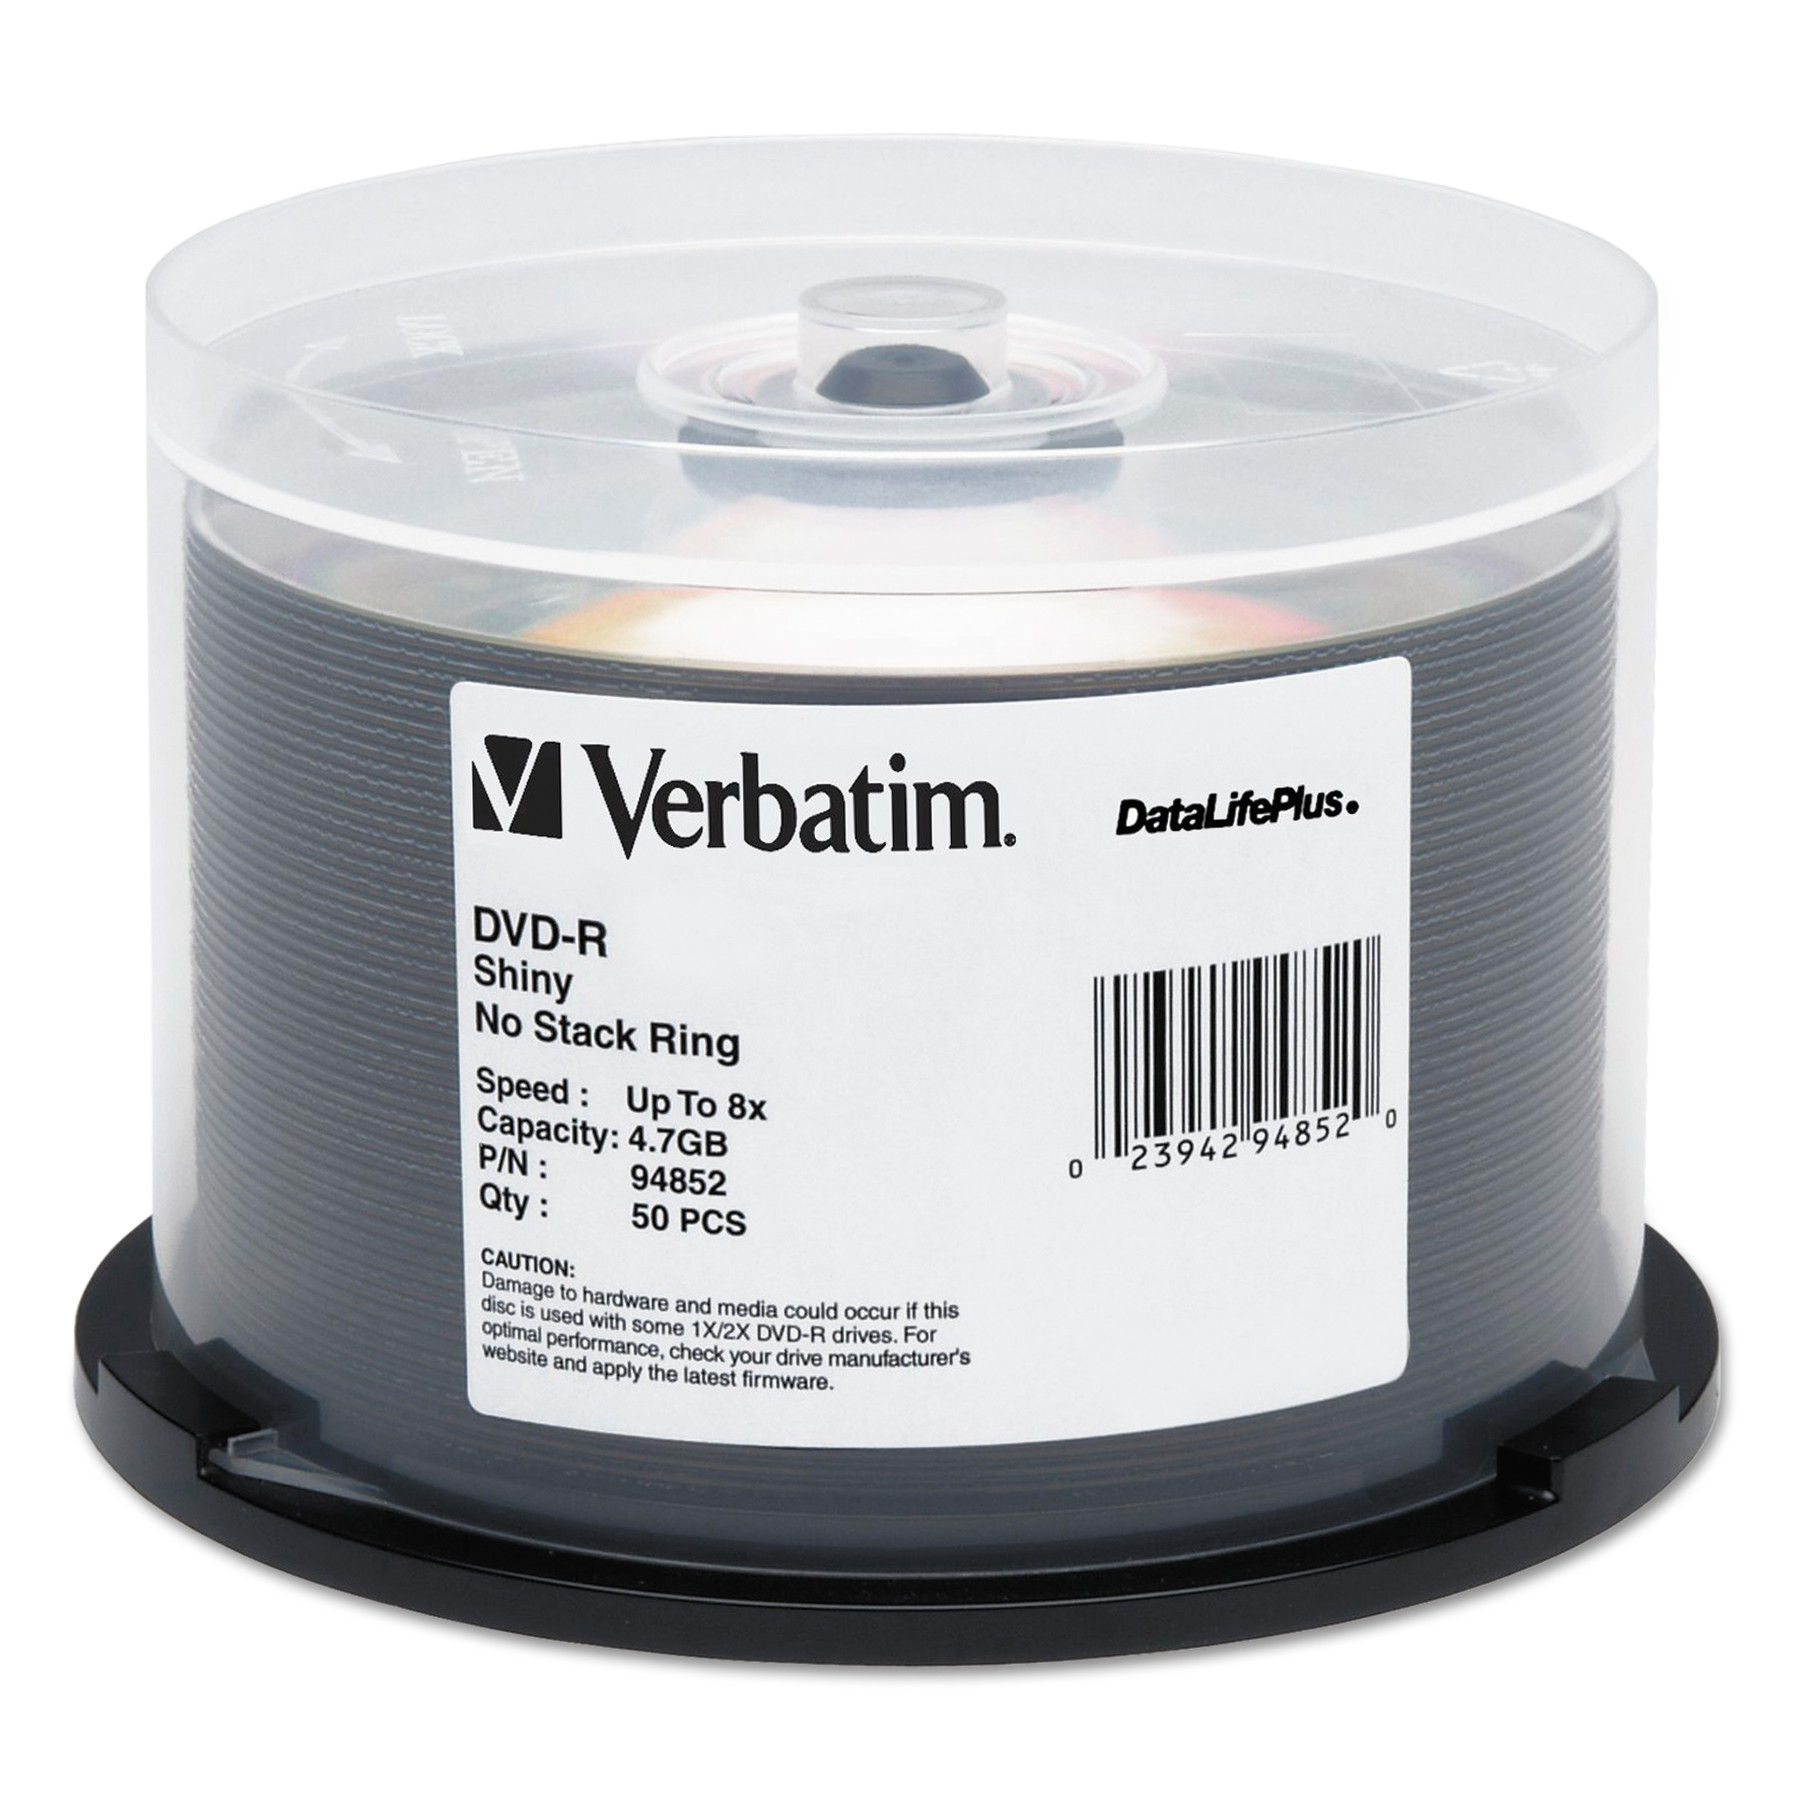 Verbatim DataLifePlus DVD-R, 4.7GB, 8X, Shiny Silver Silk Screen Printable, 50/PK Spindle -VER94852